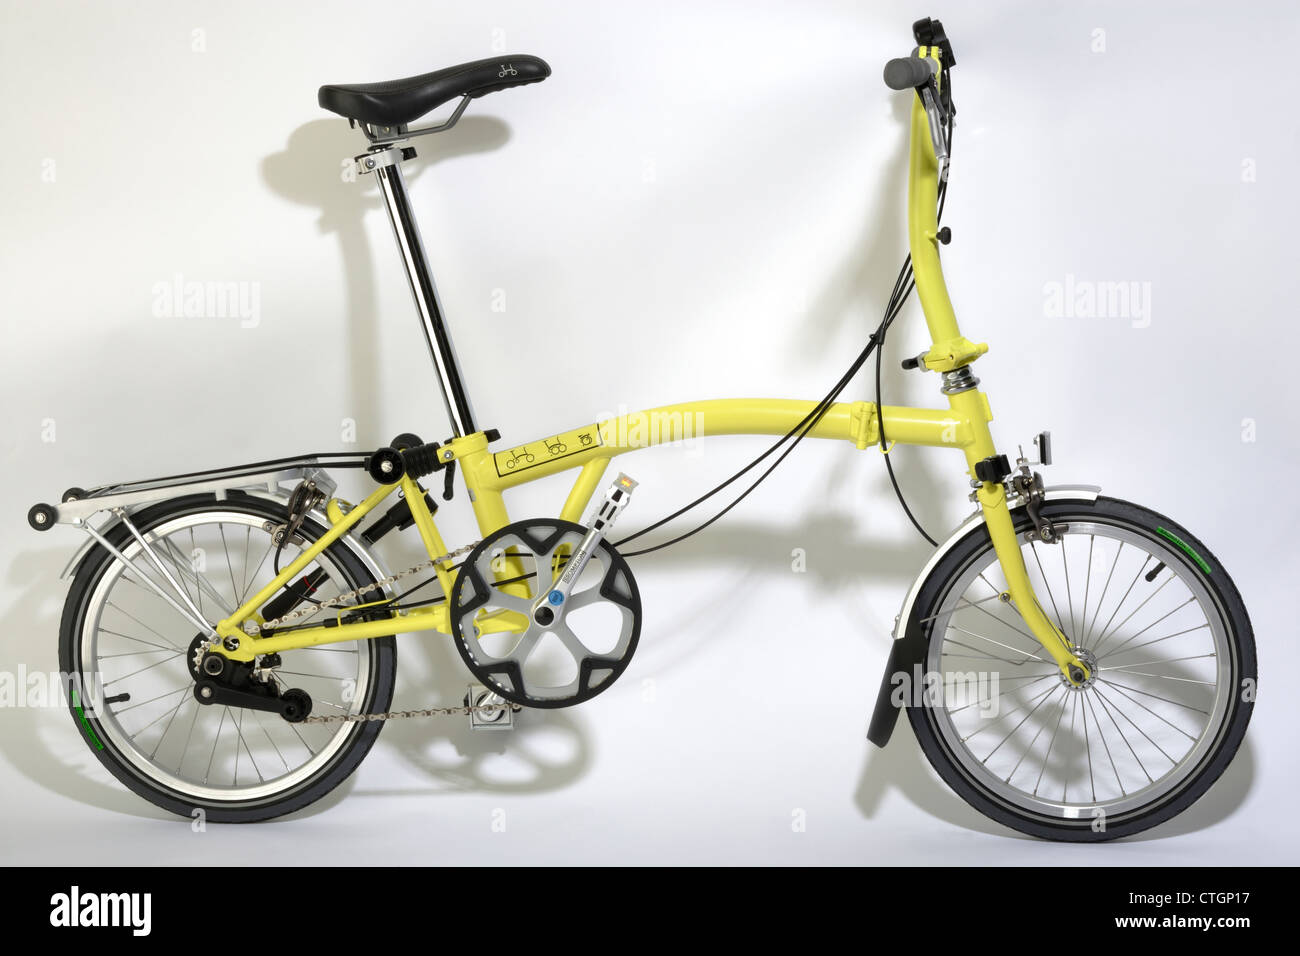 Brompton fold up bicycle - Stock Image